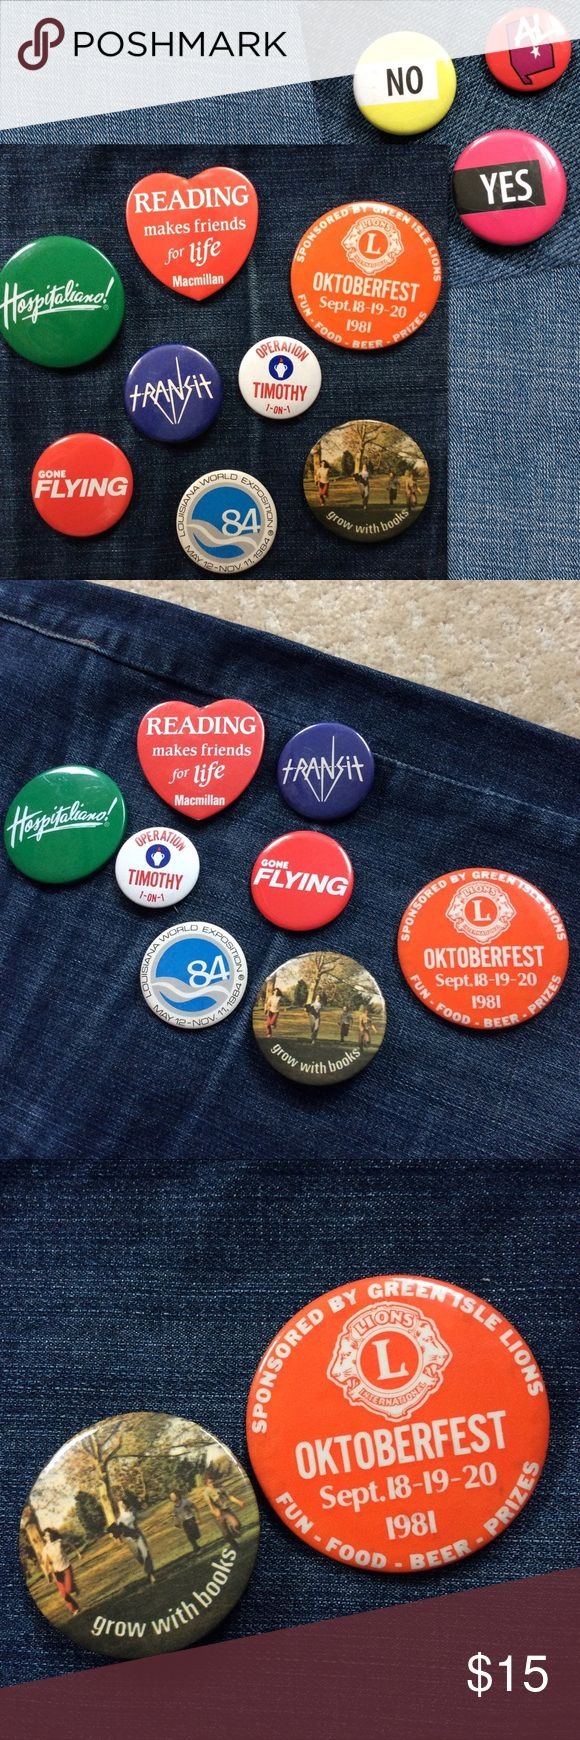 Fun Variety Pack Set of 11 Button Pins 11 vintage pin bundle from 1981 or earlier to the early 2000's.   All in good used condition, some have rust on the backs (see photos).  Hospitaliano, Reading makes friends for life Macmillan, Green Isle Lions Oktoberfest 1981, Transit (emo band logo?) Gone Flying (Airplane magazine) Operation Timothy 1-on-1, Louisiana World Exposition 1984, grow with books, yes & no, and Alabama AL state.  80's 1980's. May be willing to sell some separately, the larger…